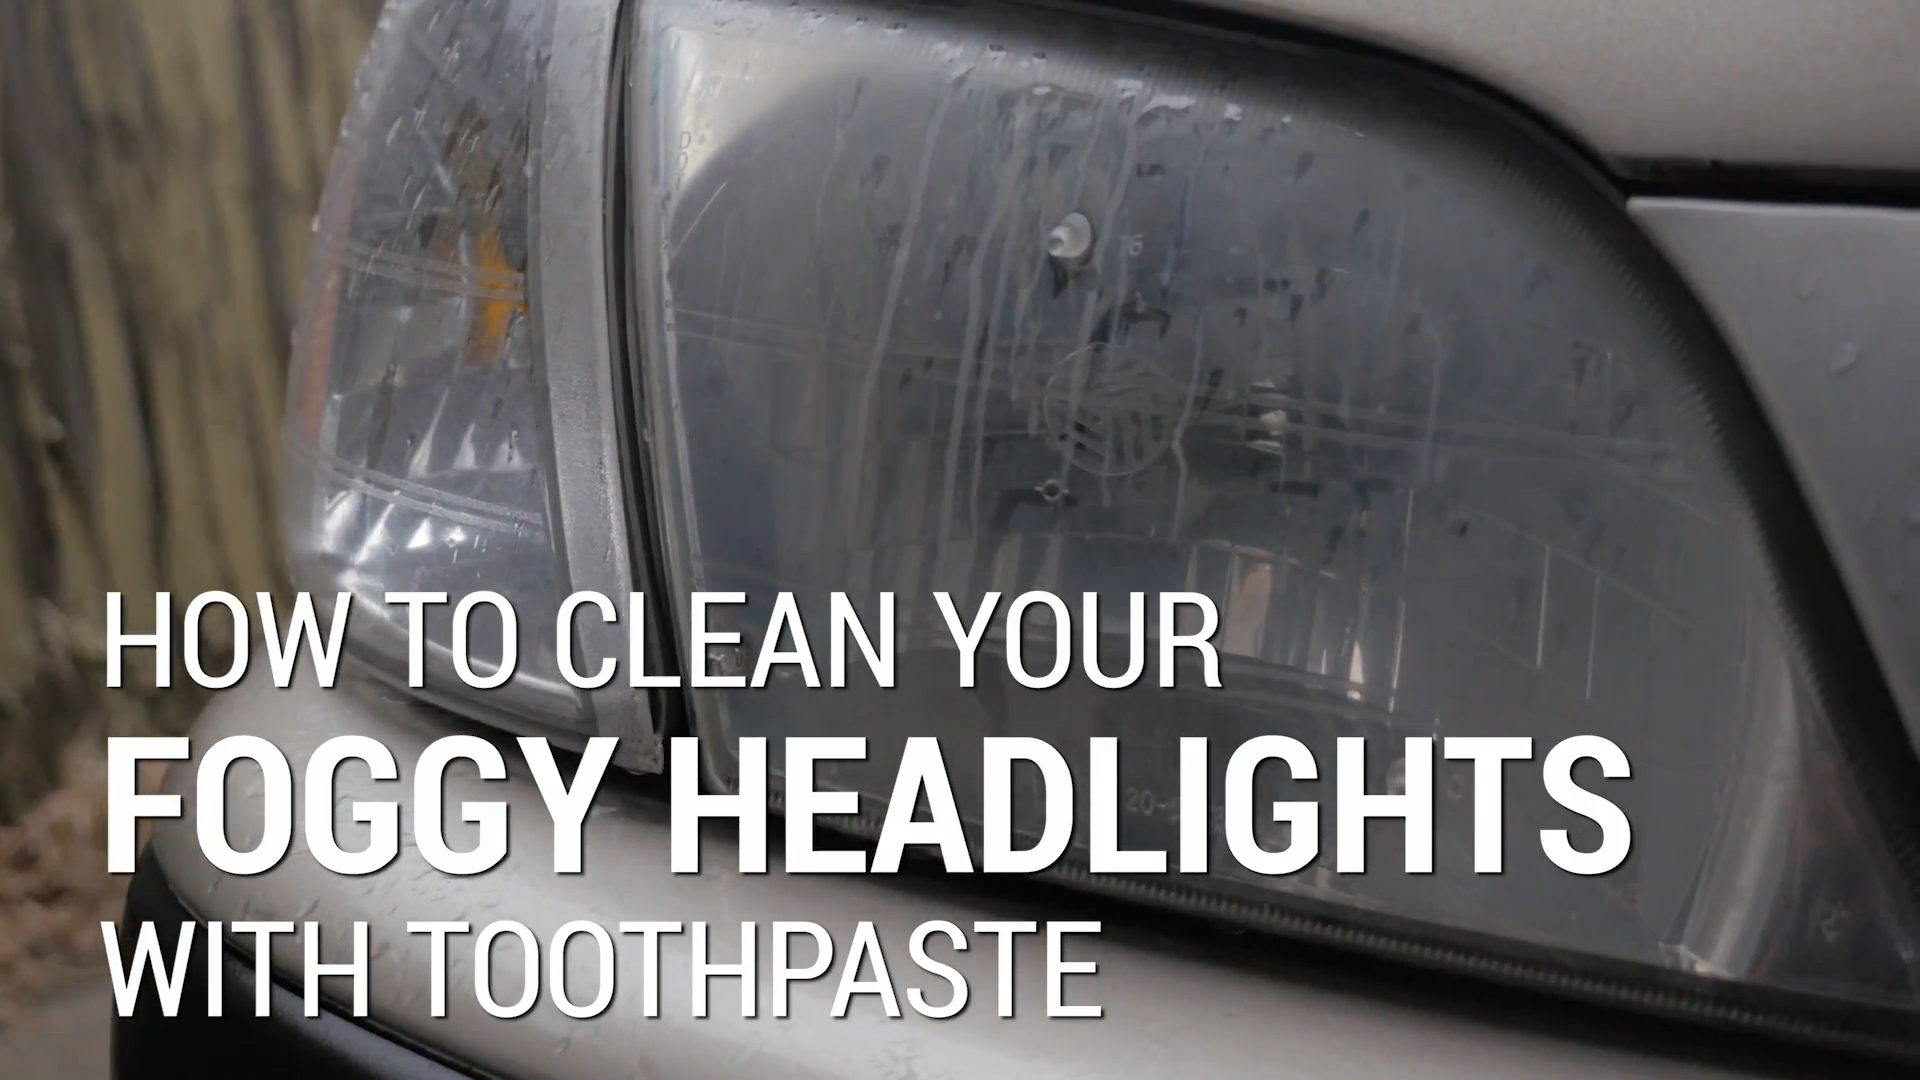 How To Clean Foggy Headlights With Toothpaste | Car Hacks